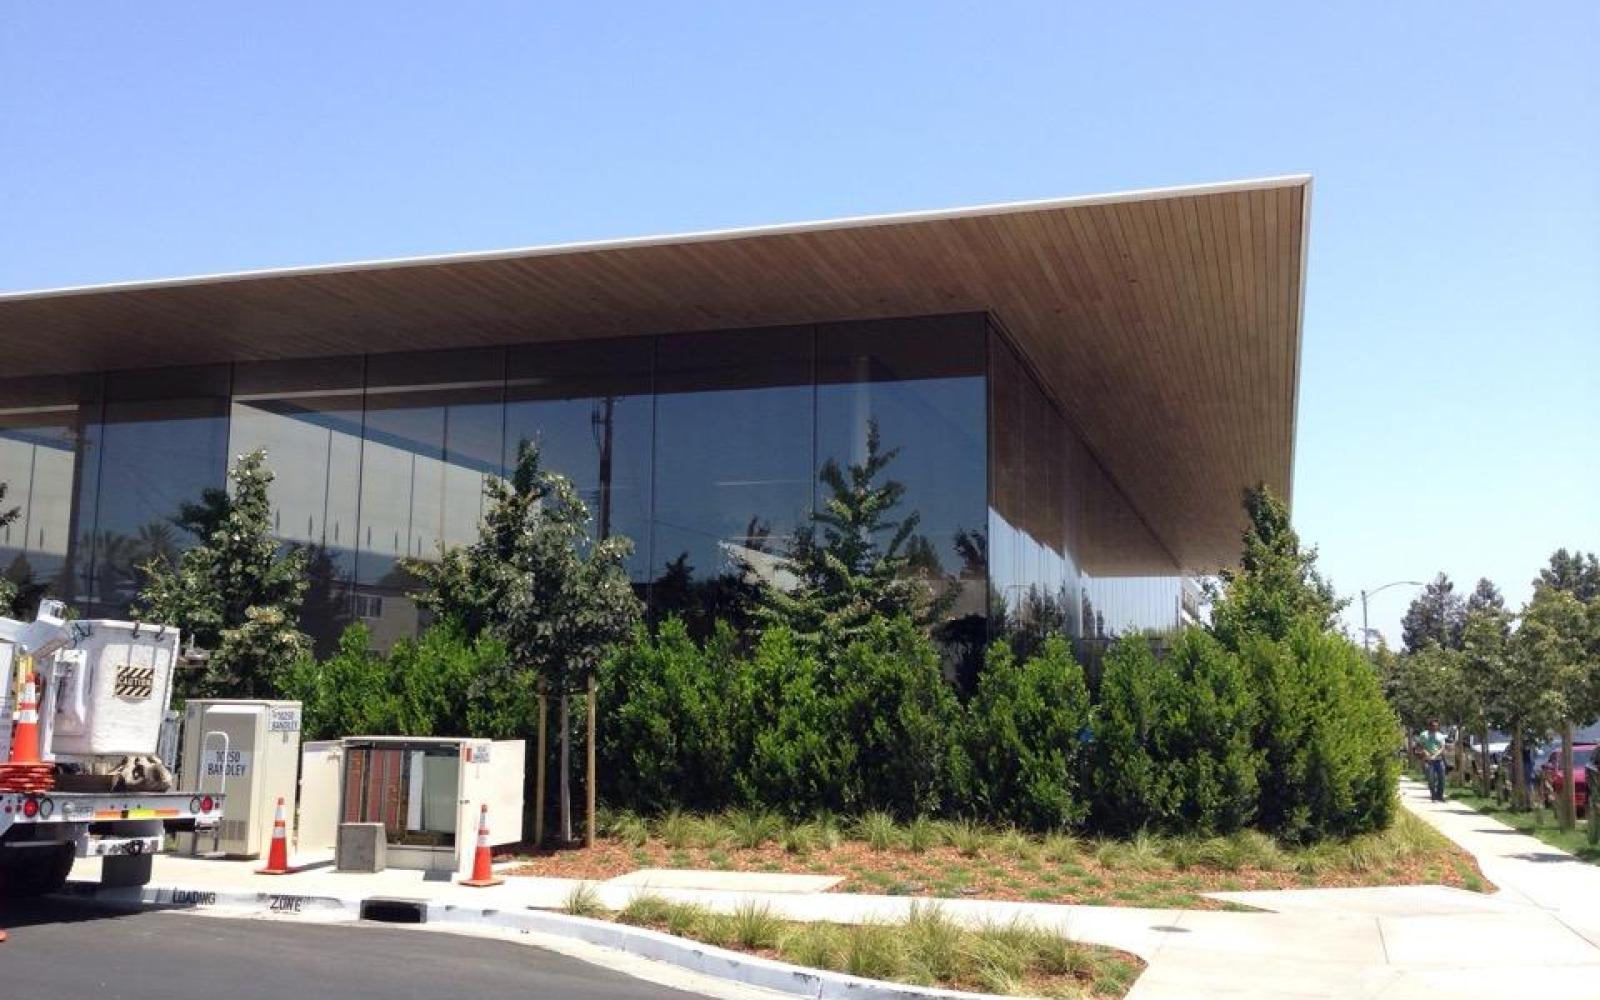 Apple opens stunning new (and more private) Caffè Macs employee cafeteria in Cupertino